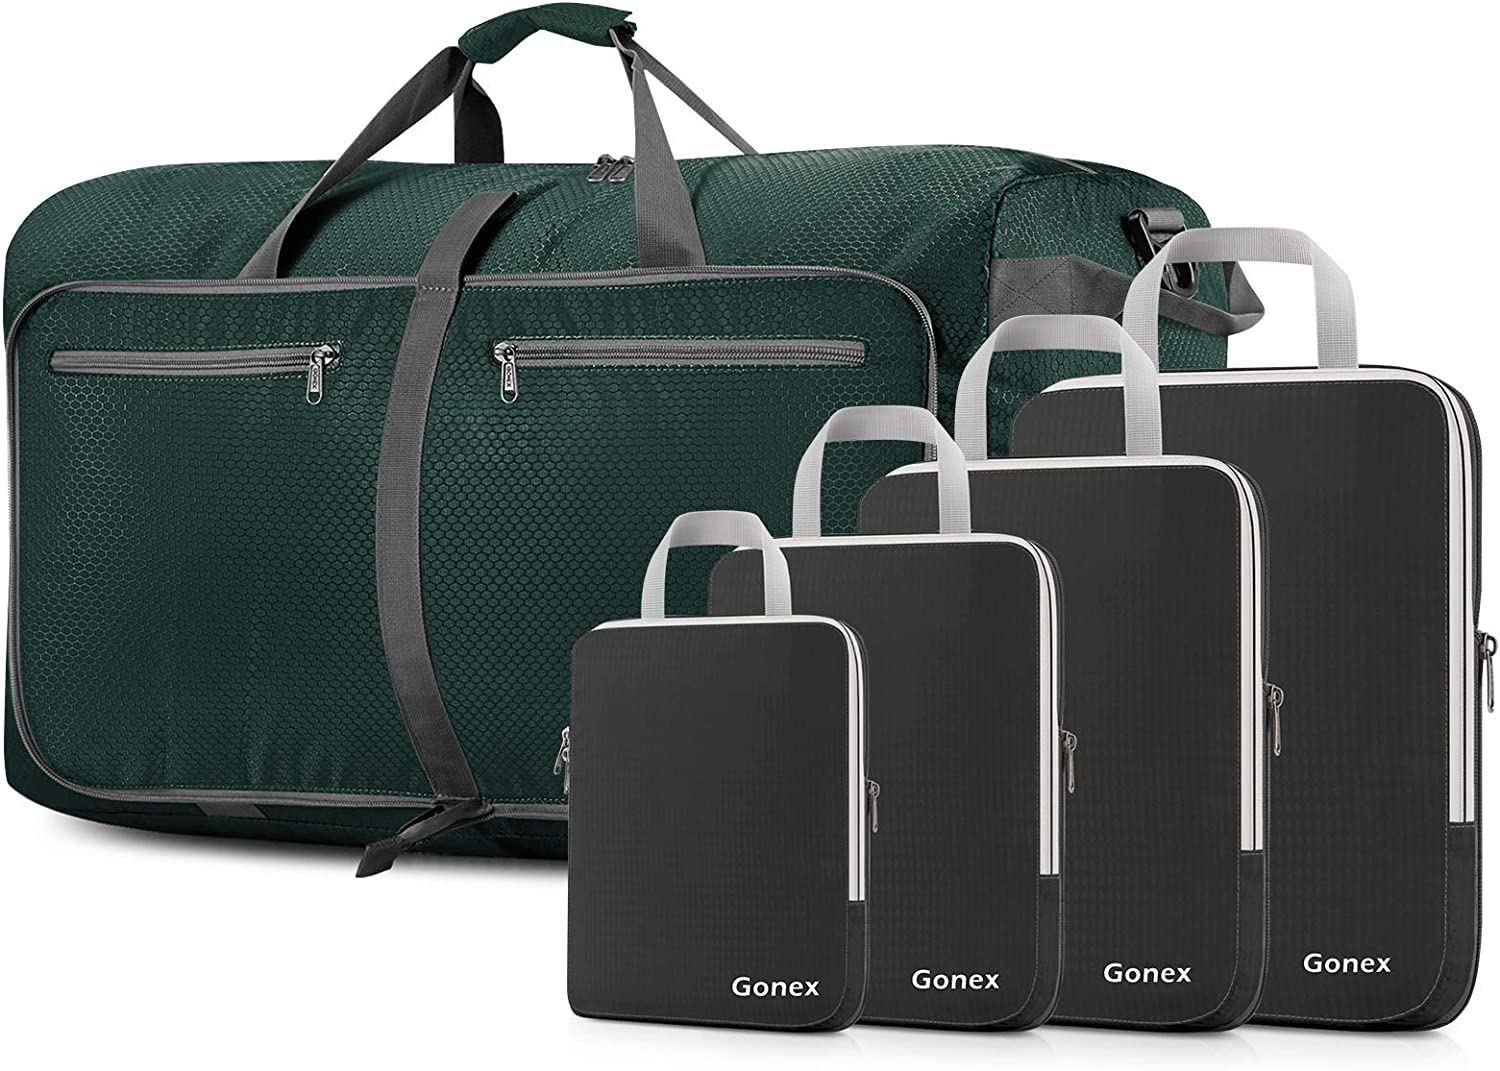 Gonex 4pcs Compression Packing Cubes Expandable Travel Bags Organizers Black With Travel Duffle Bag Green